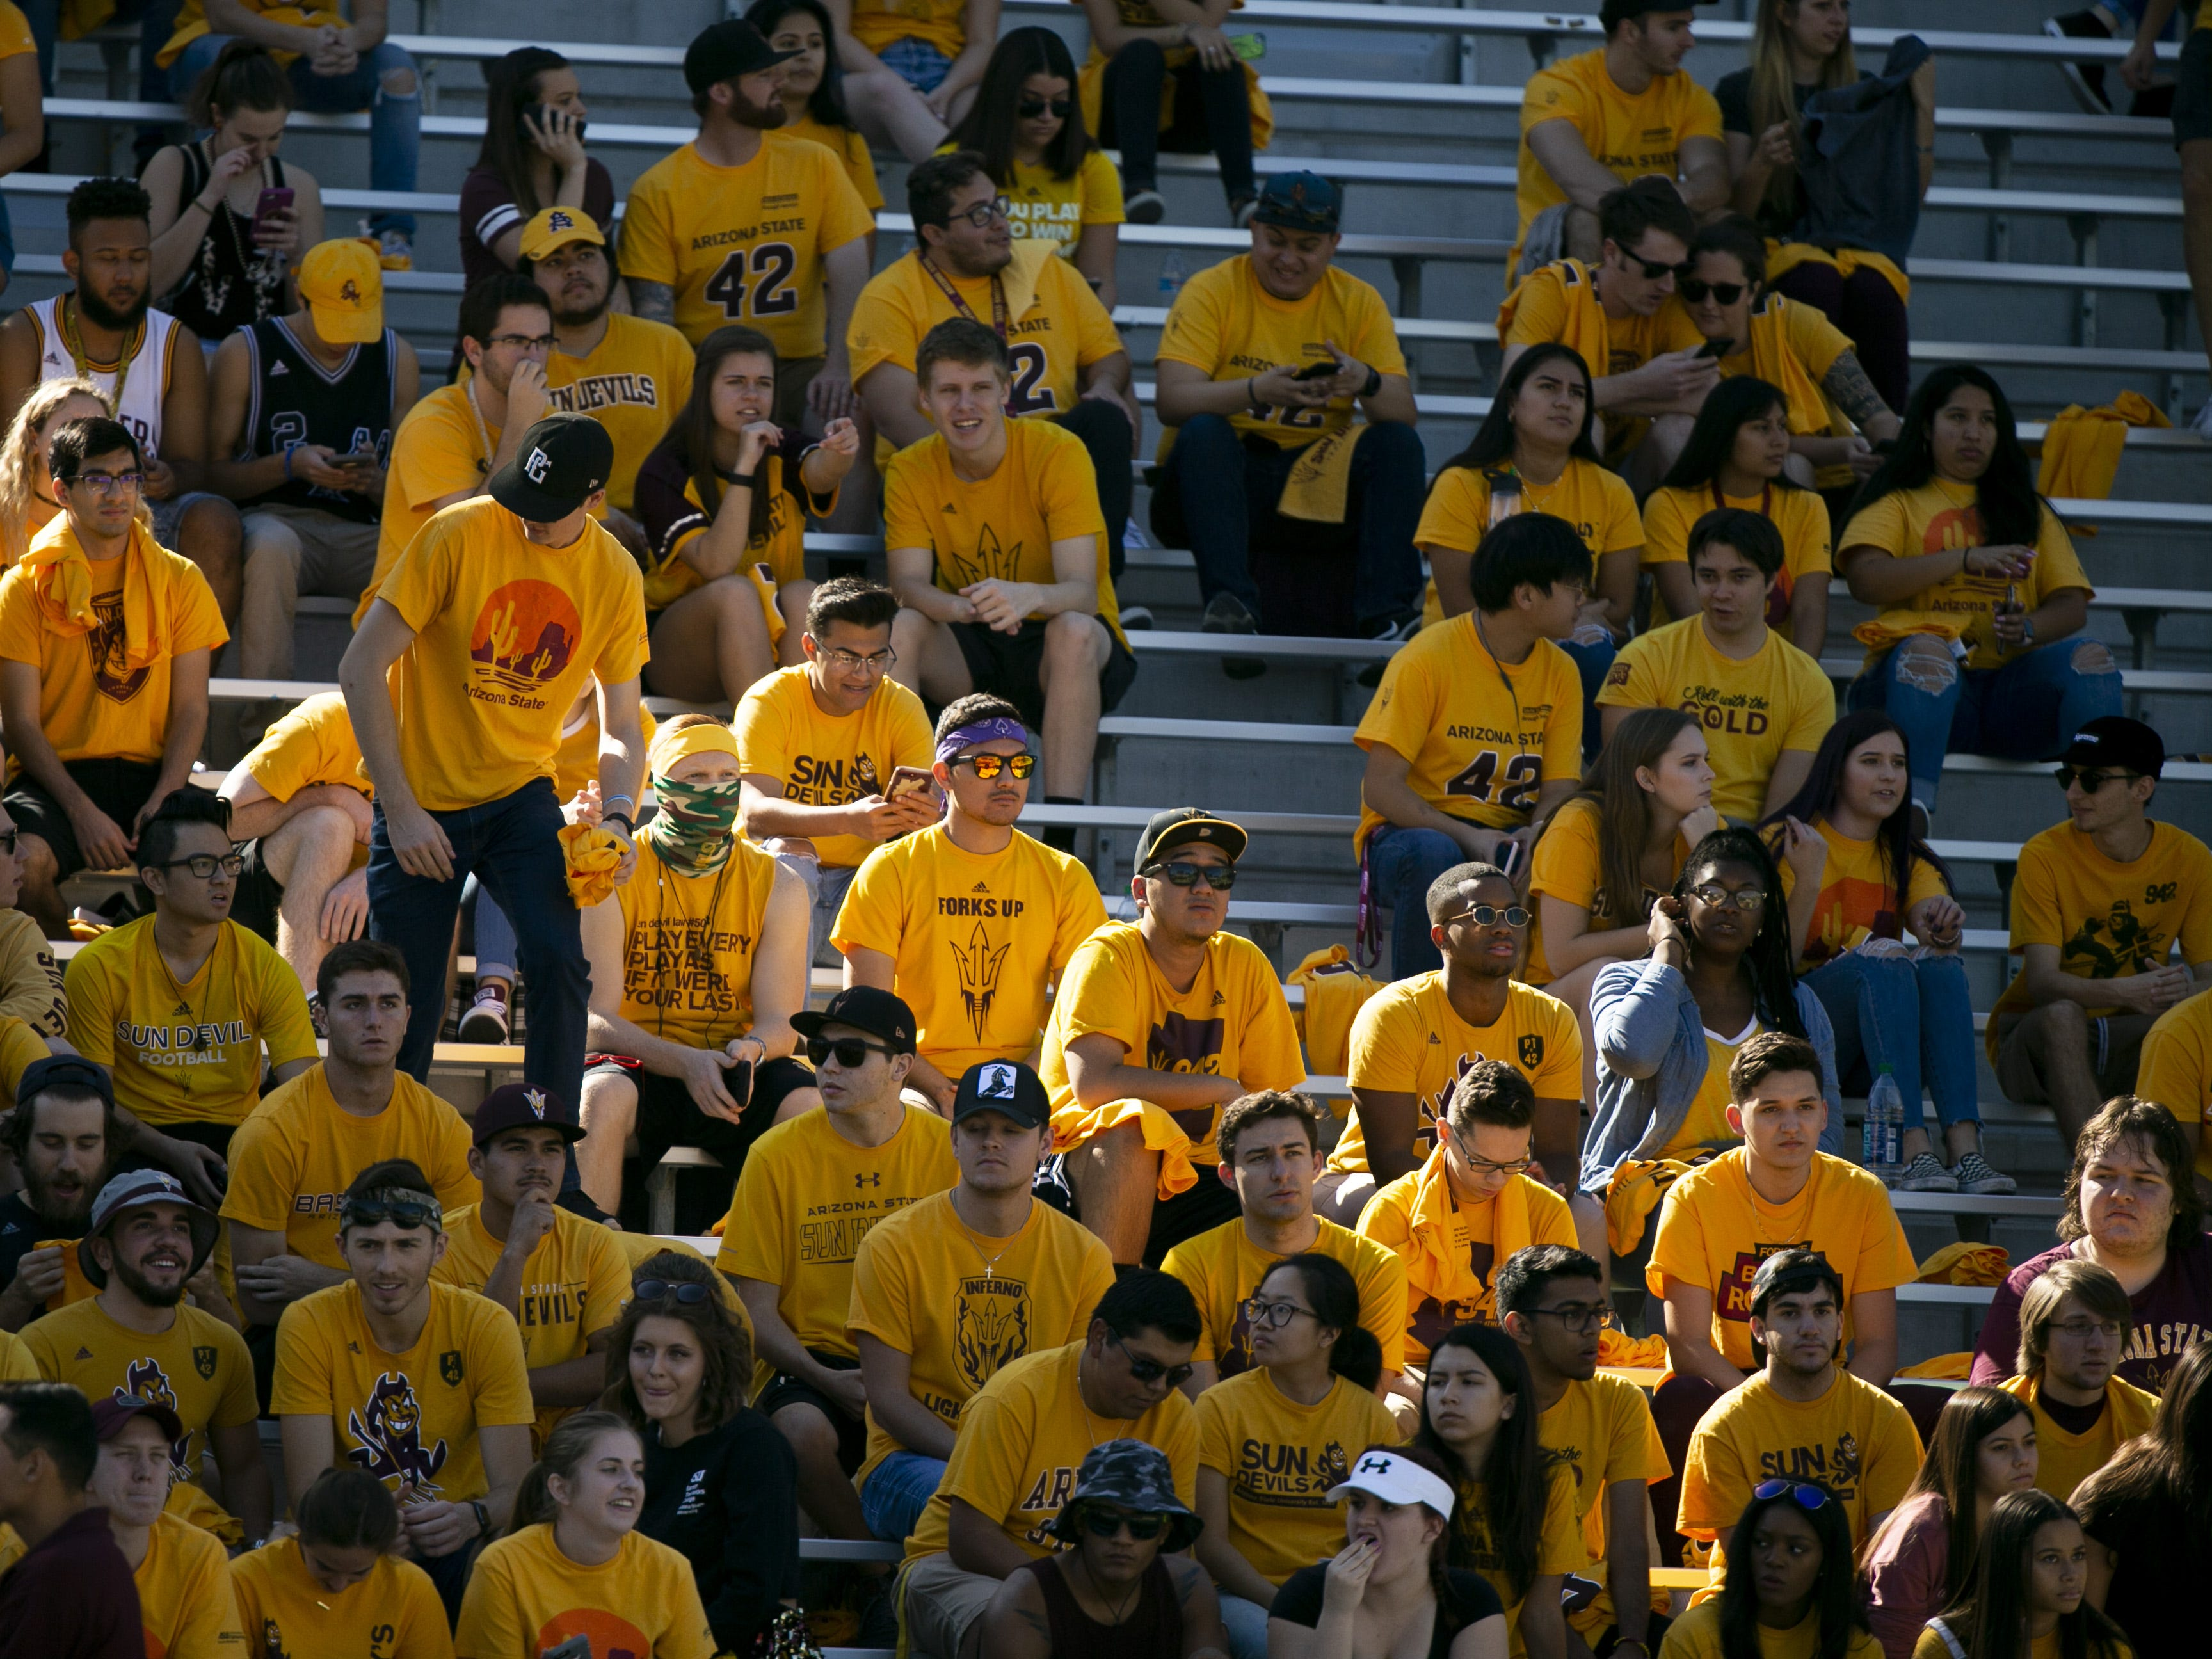 The ASU student section before the PAC-12 college football game against UCLA at Sun Devil Stadium in Tempe on Saturday, November 10, 2018.